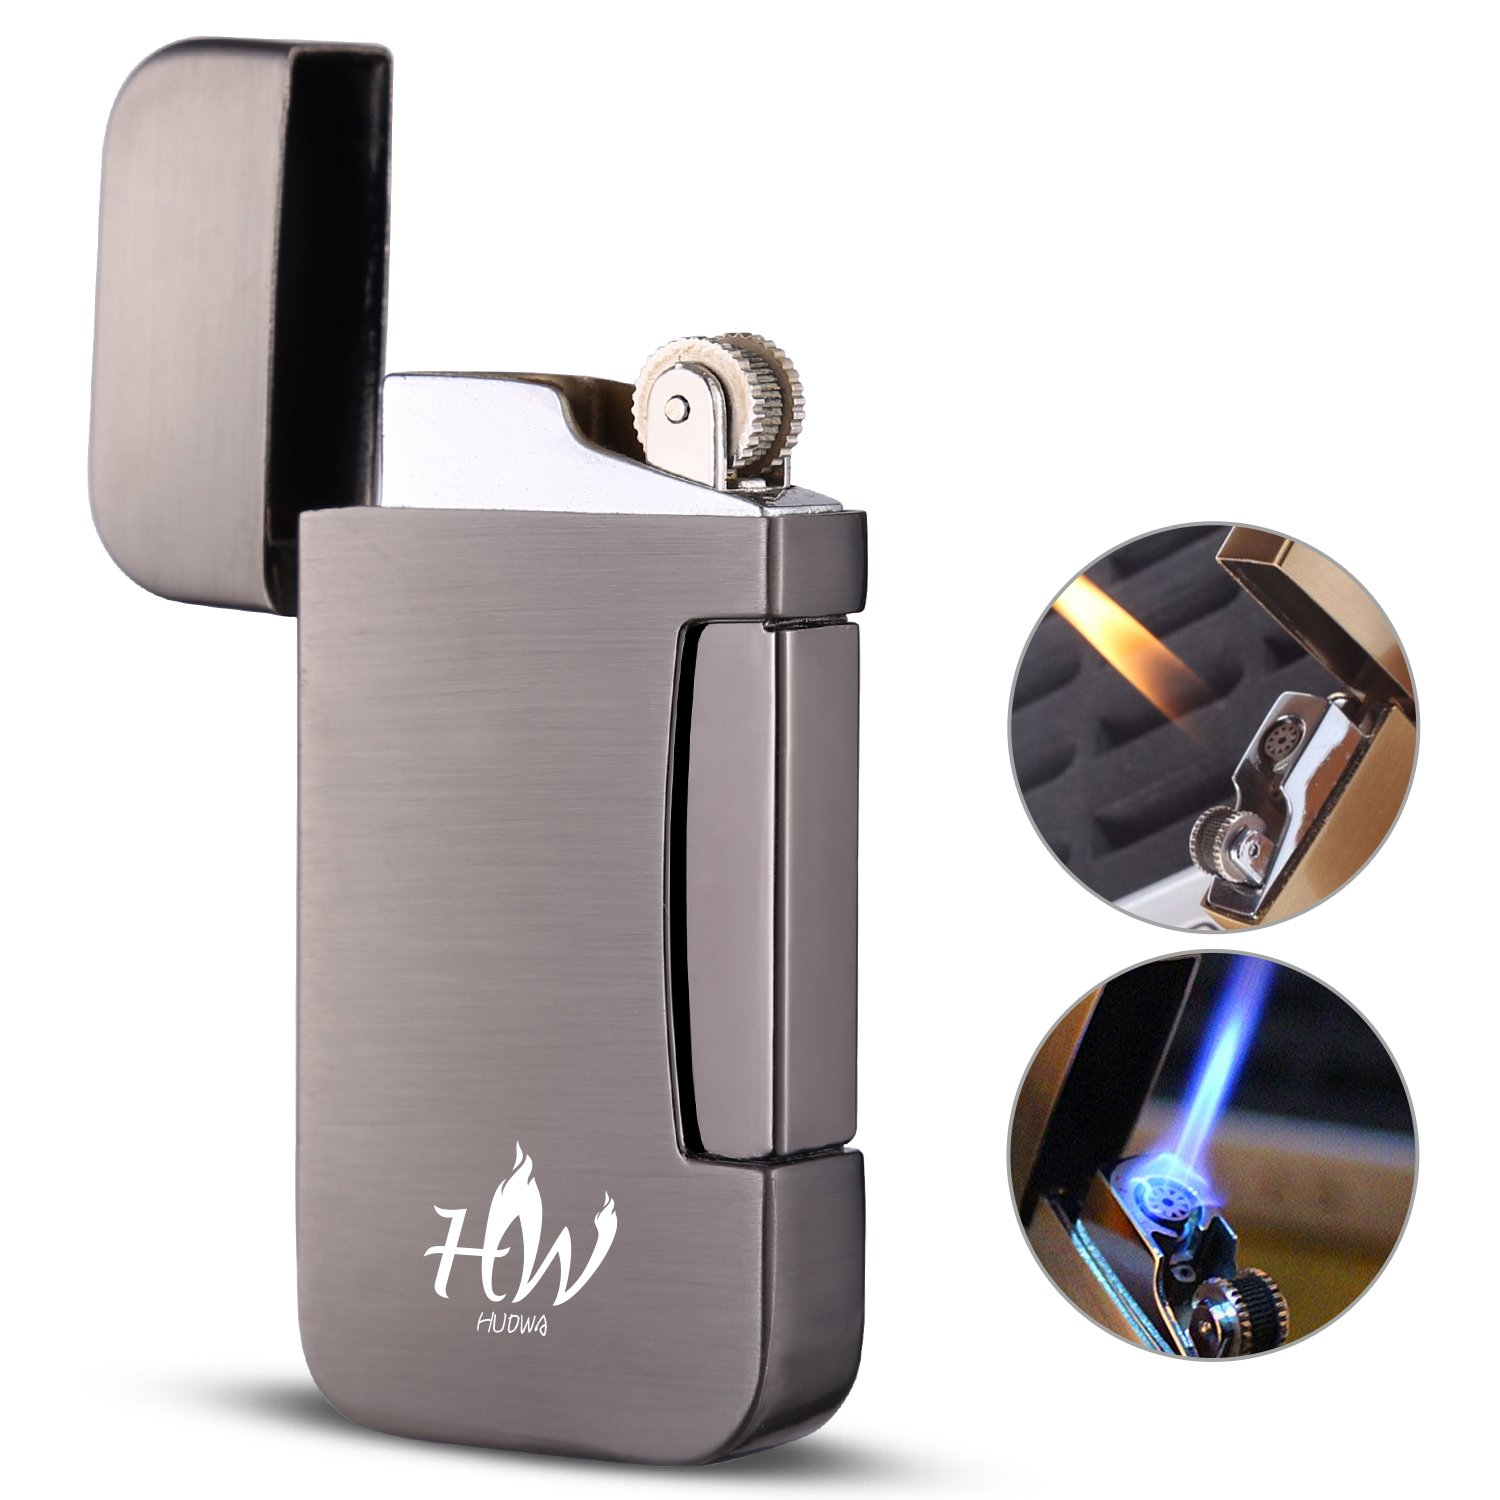 HUOWA Jet Torch Cigar Lighter, Unique Soft/Jet Flame Switchable and Butane Gas Fuel Refillable Windproof Cigarette Lighter for Tobacco Pipe & Cigar